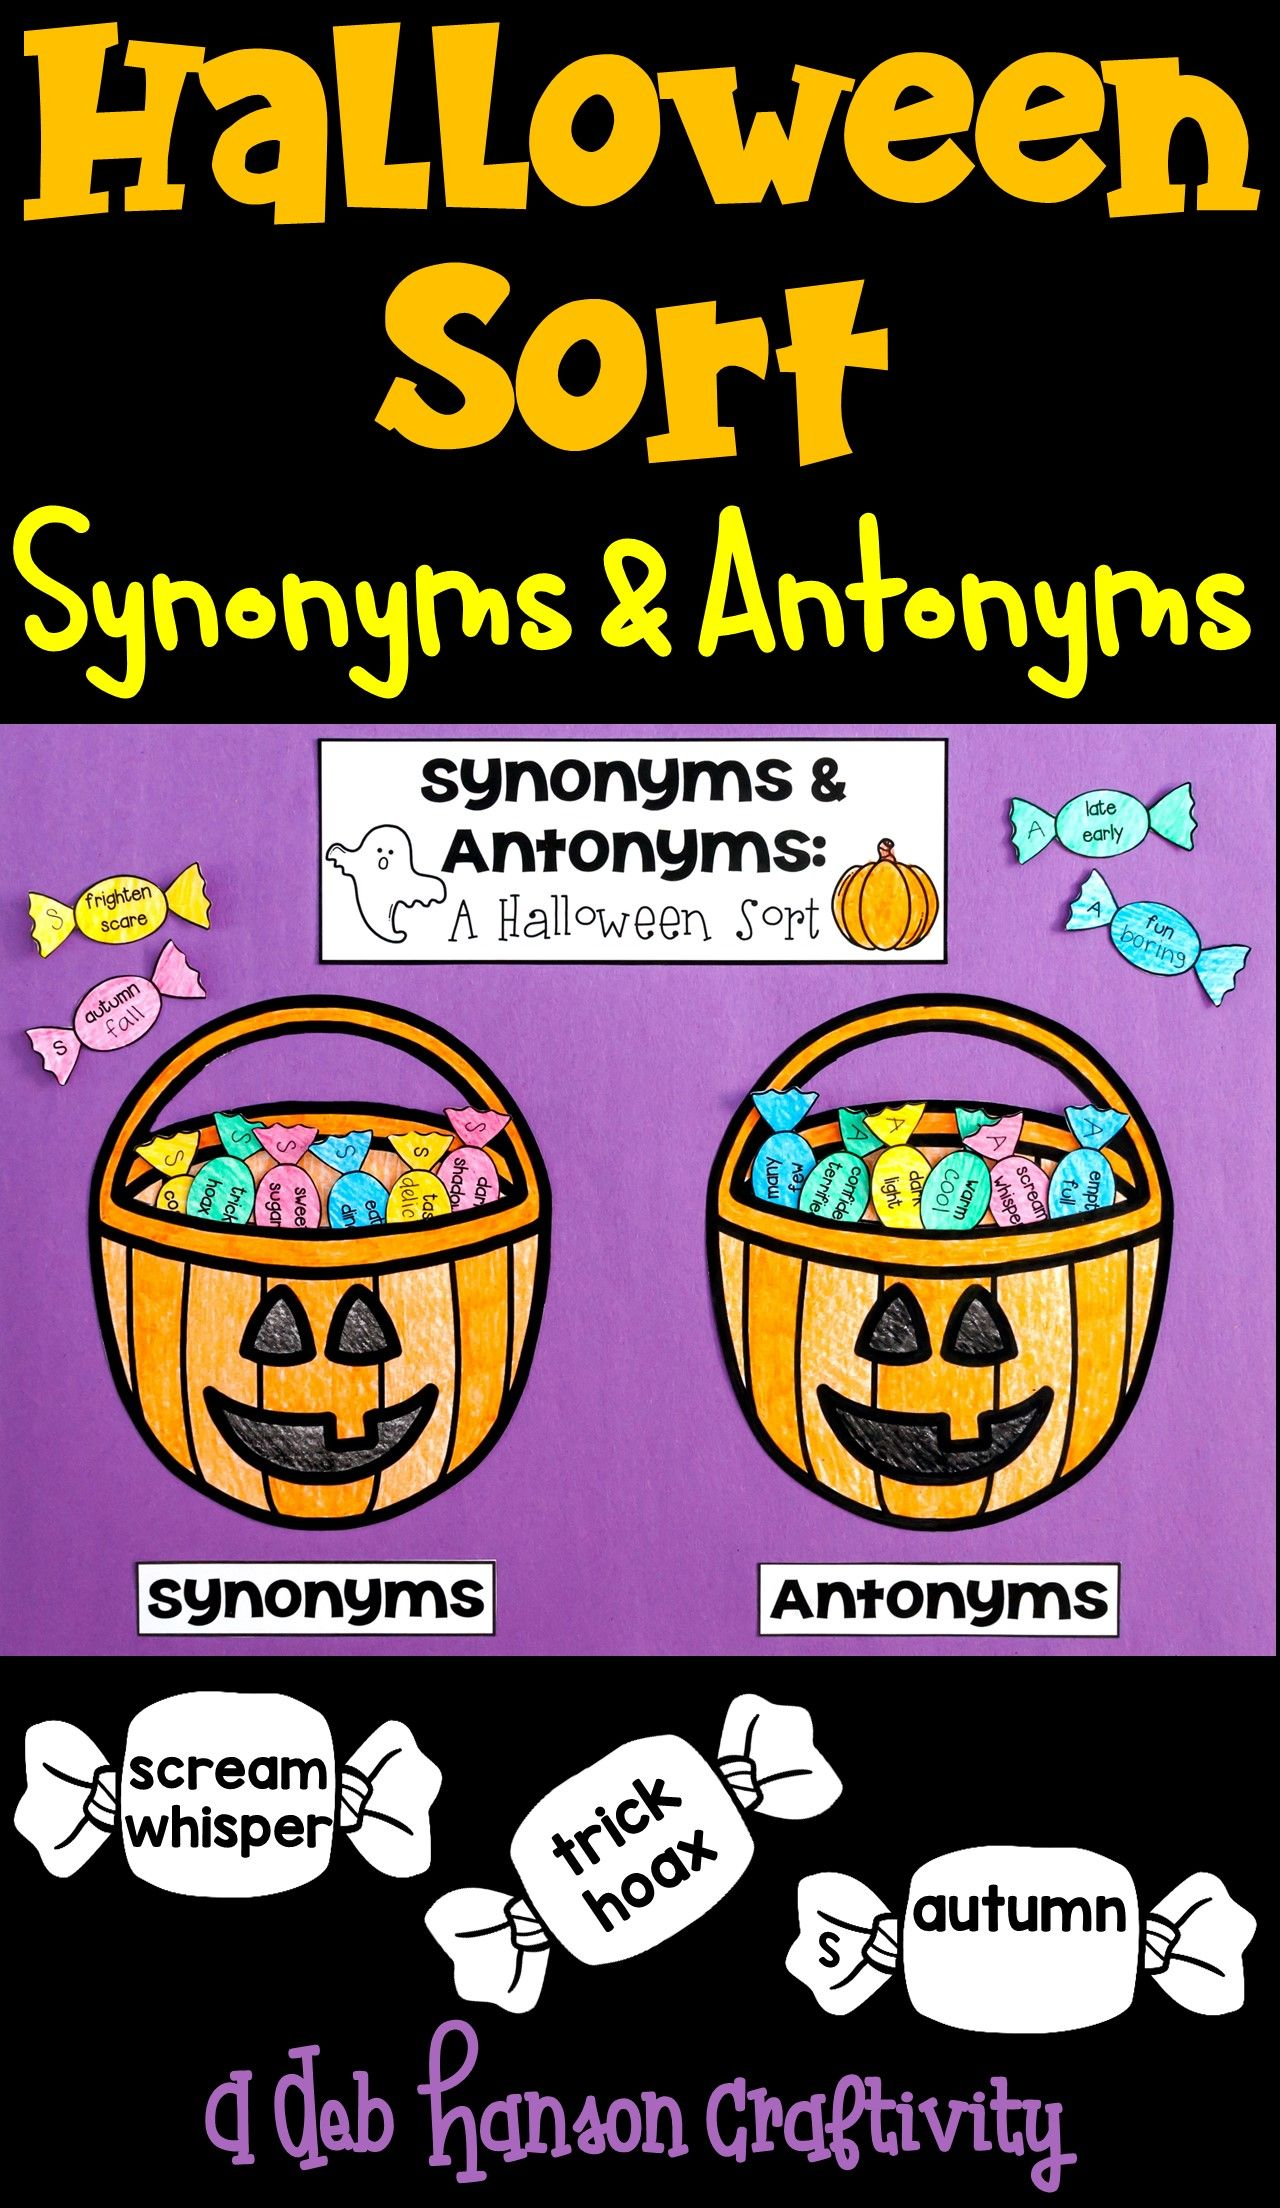 Synonym Antonym Halloween Sort Studentsyze Word Relationships And Classify Each Pair As